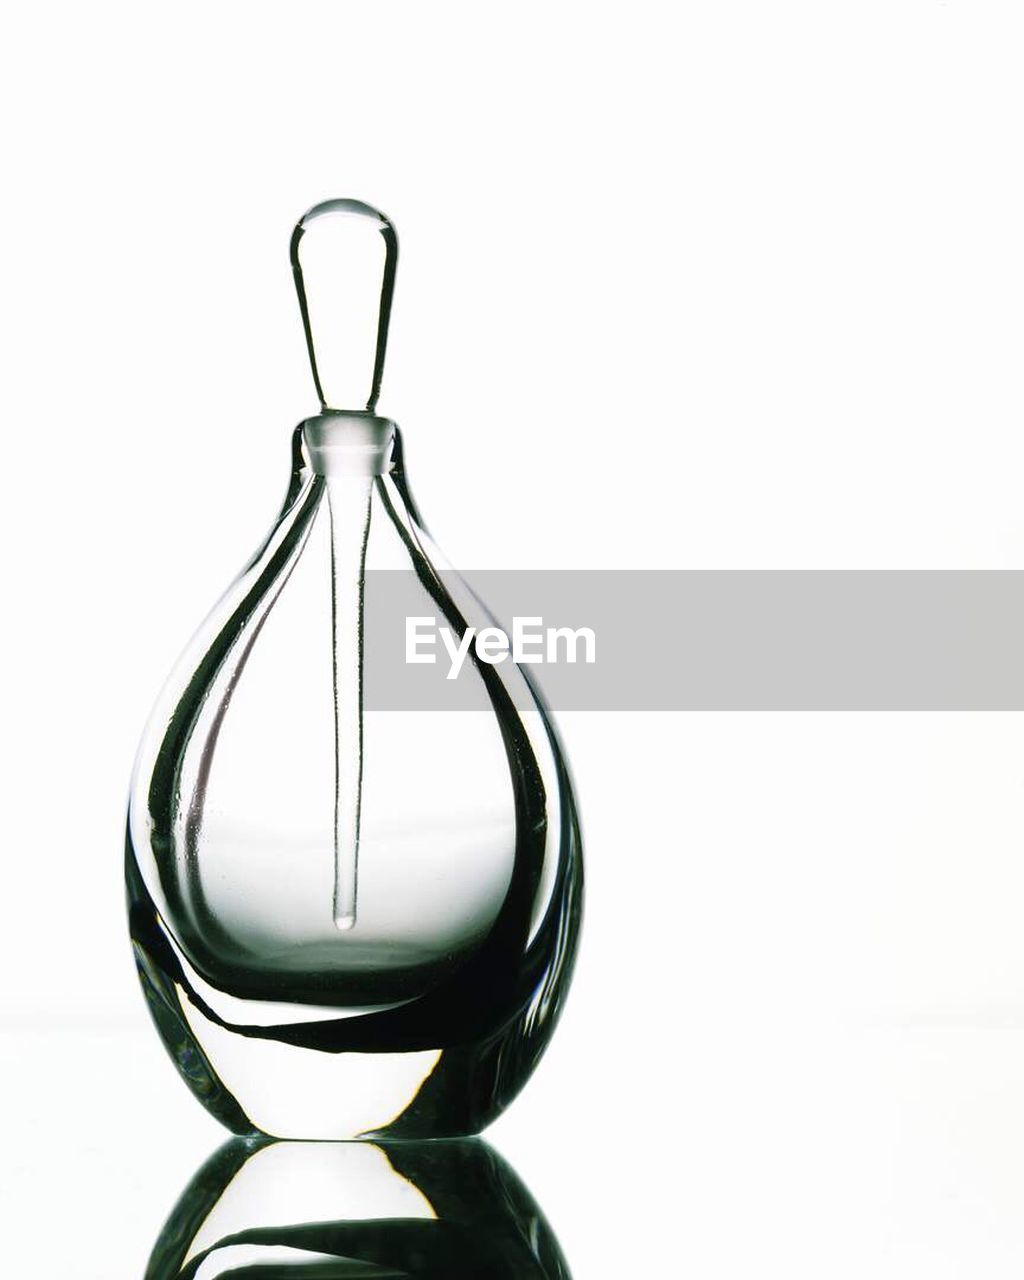 LOW ANGLE VIEW OF LAMP OVER WHITE BACKGROUND